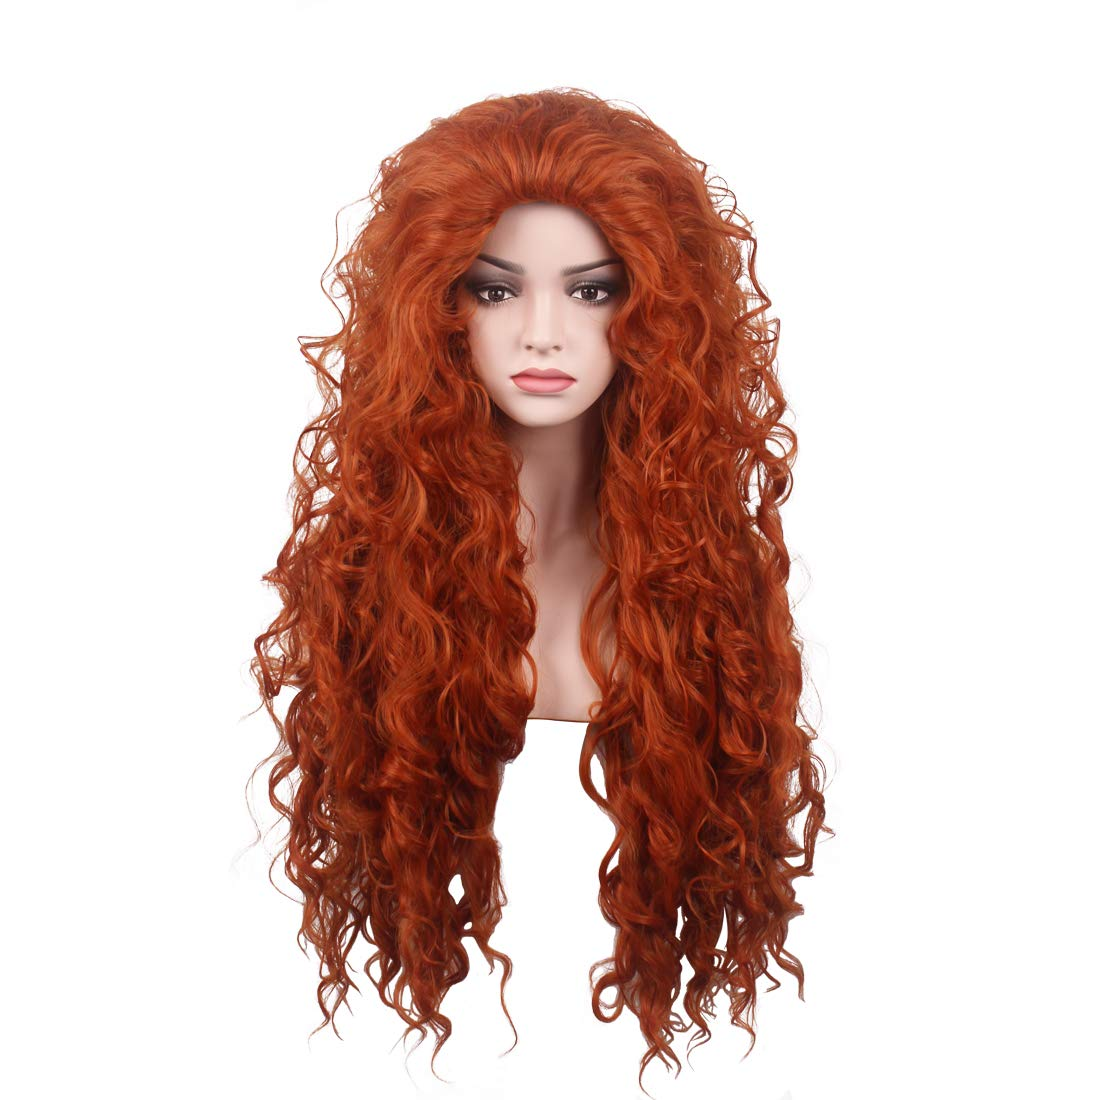 WildCos Long Orange Curly Cosplay Wig for Women MingDai